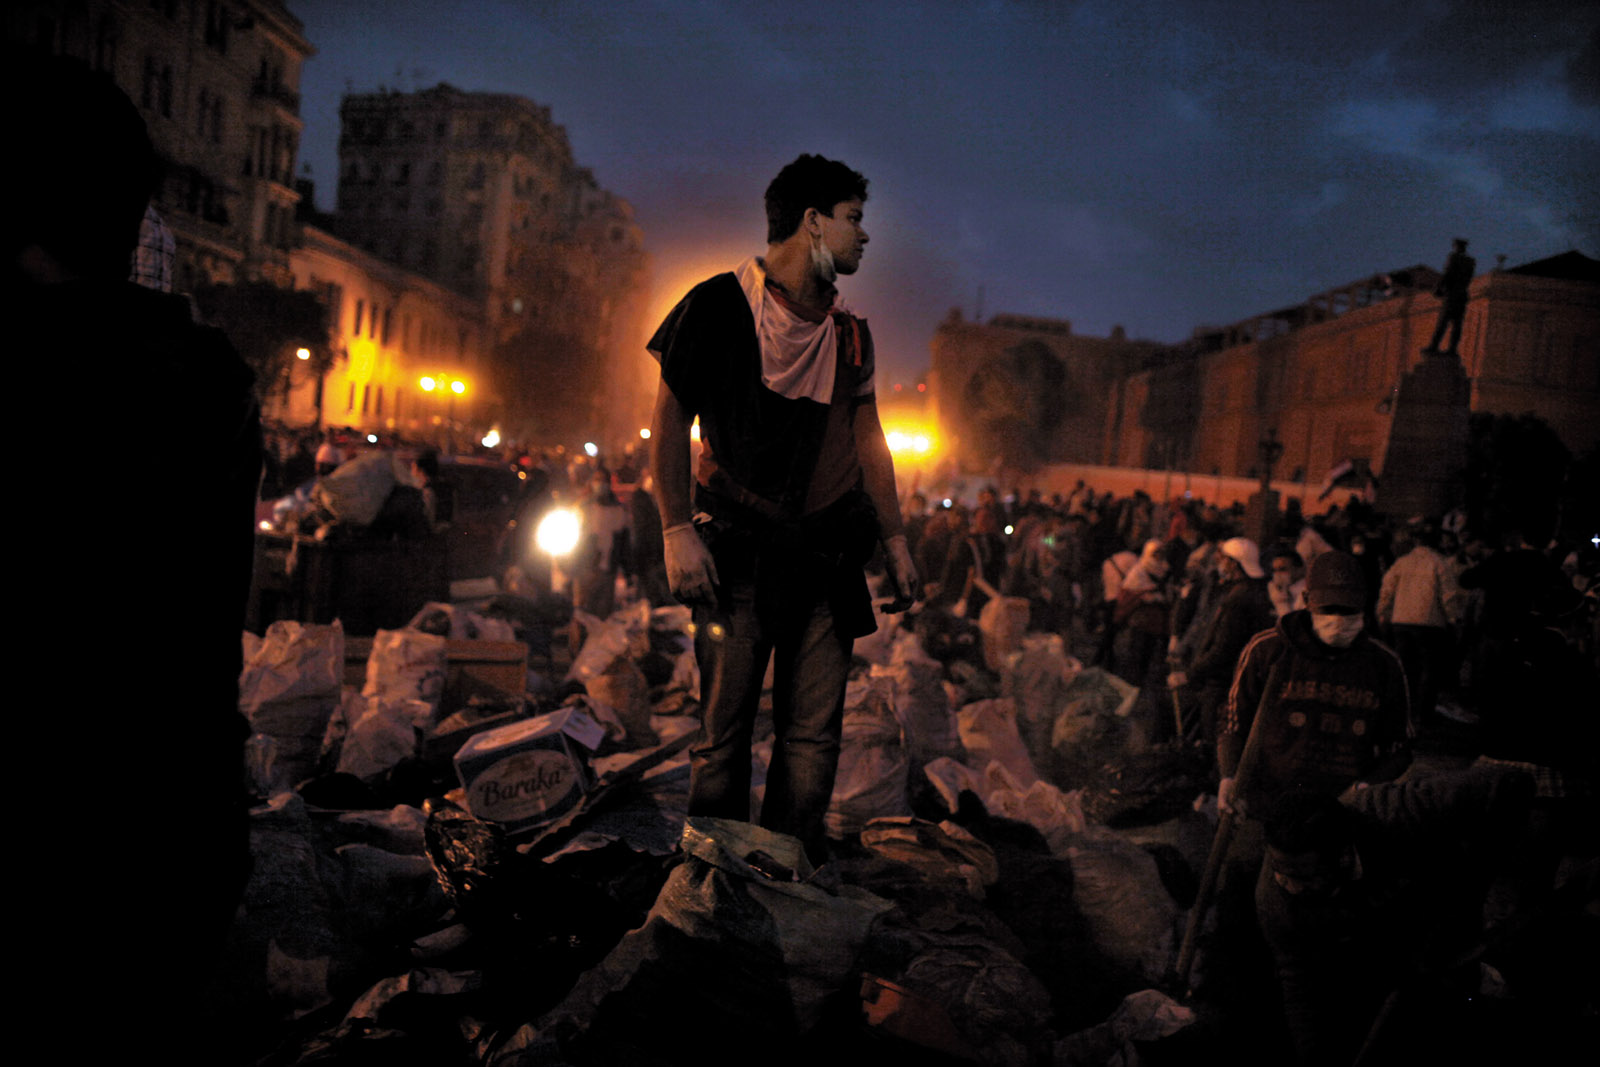 Volunteers clearing trash and debris from Tahrir Square, Cairo, February 2011